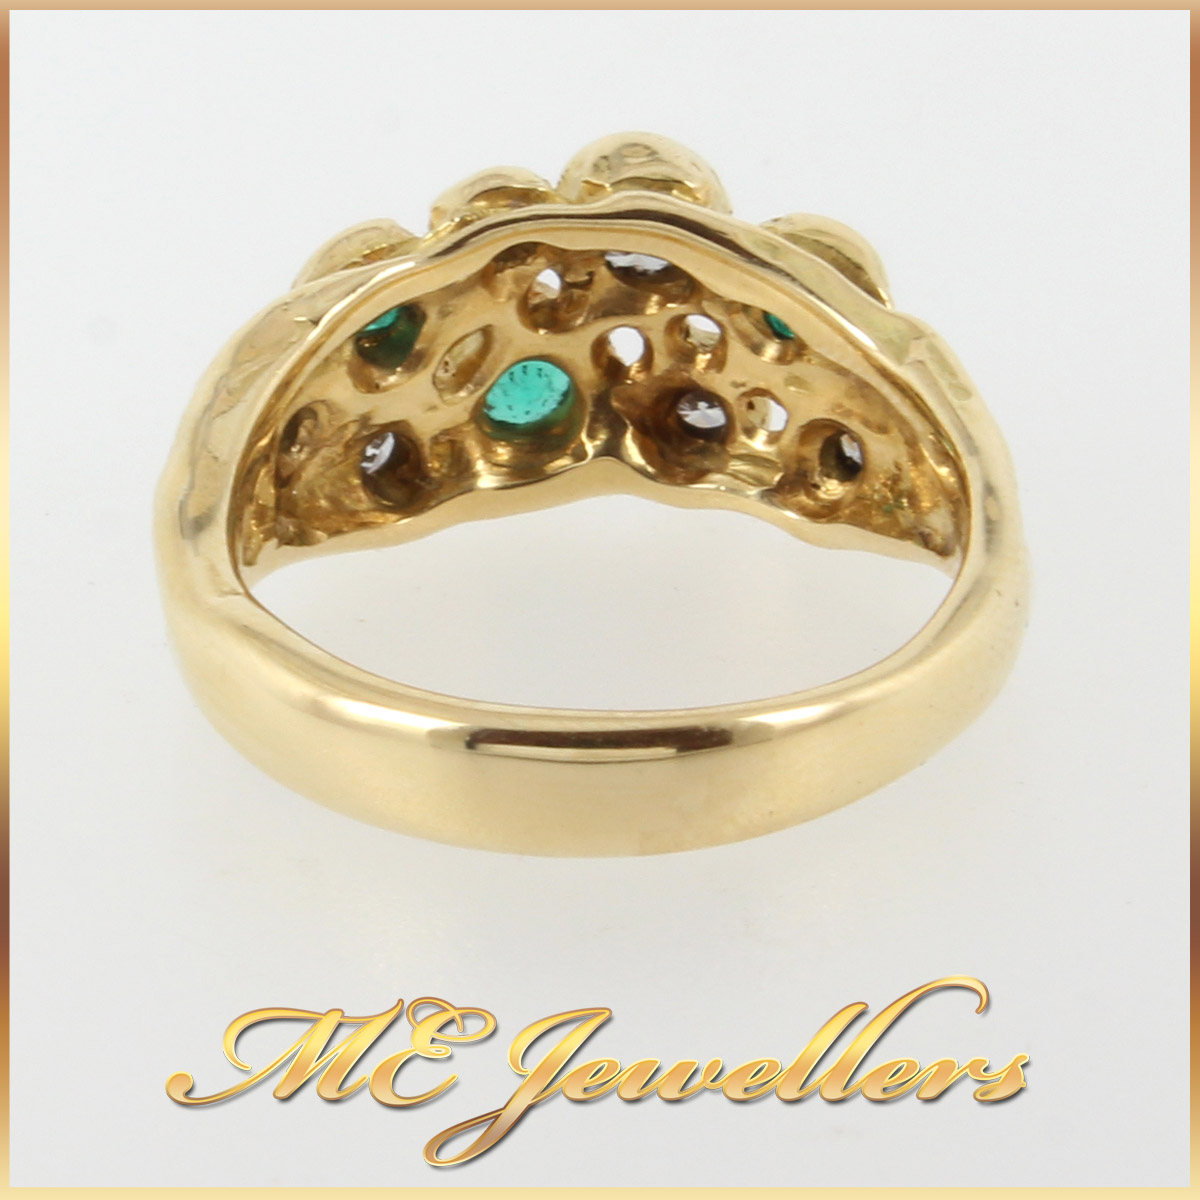 952 Emerald and Diamond Dress Ring In 18K YG shank